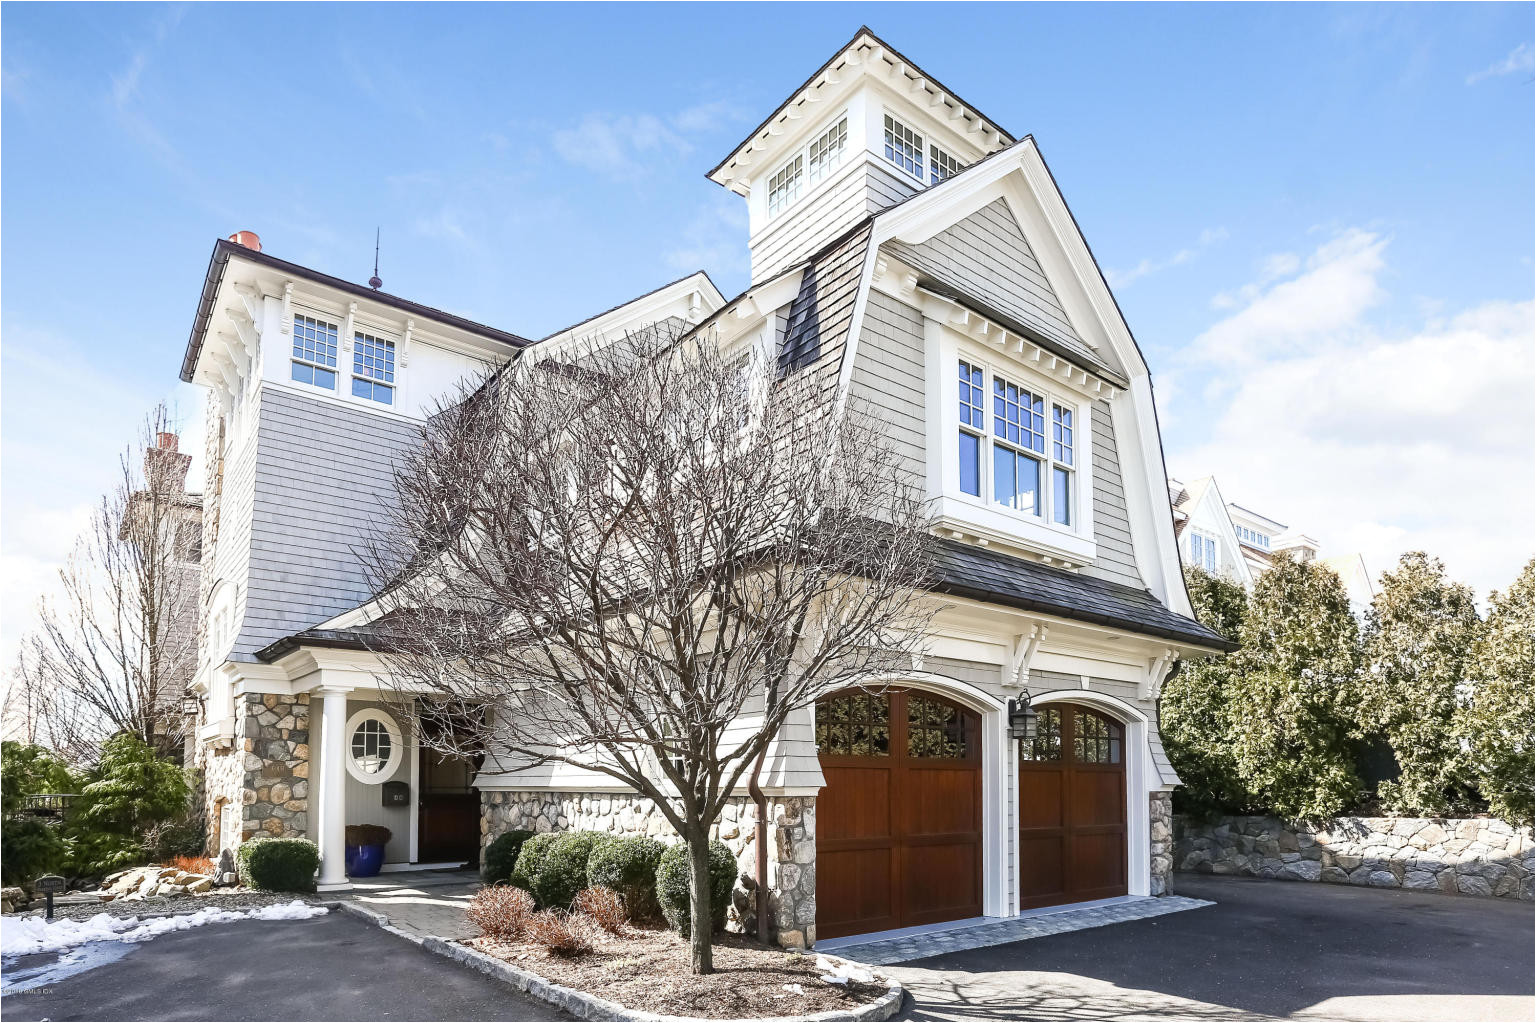 steps from greenwich avenue and a two minute walk from the train station movie theater and restaurants this classically inspired townhome